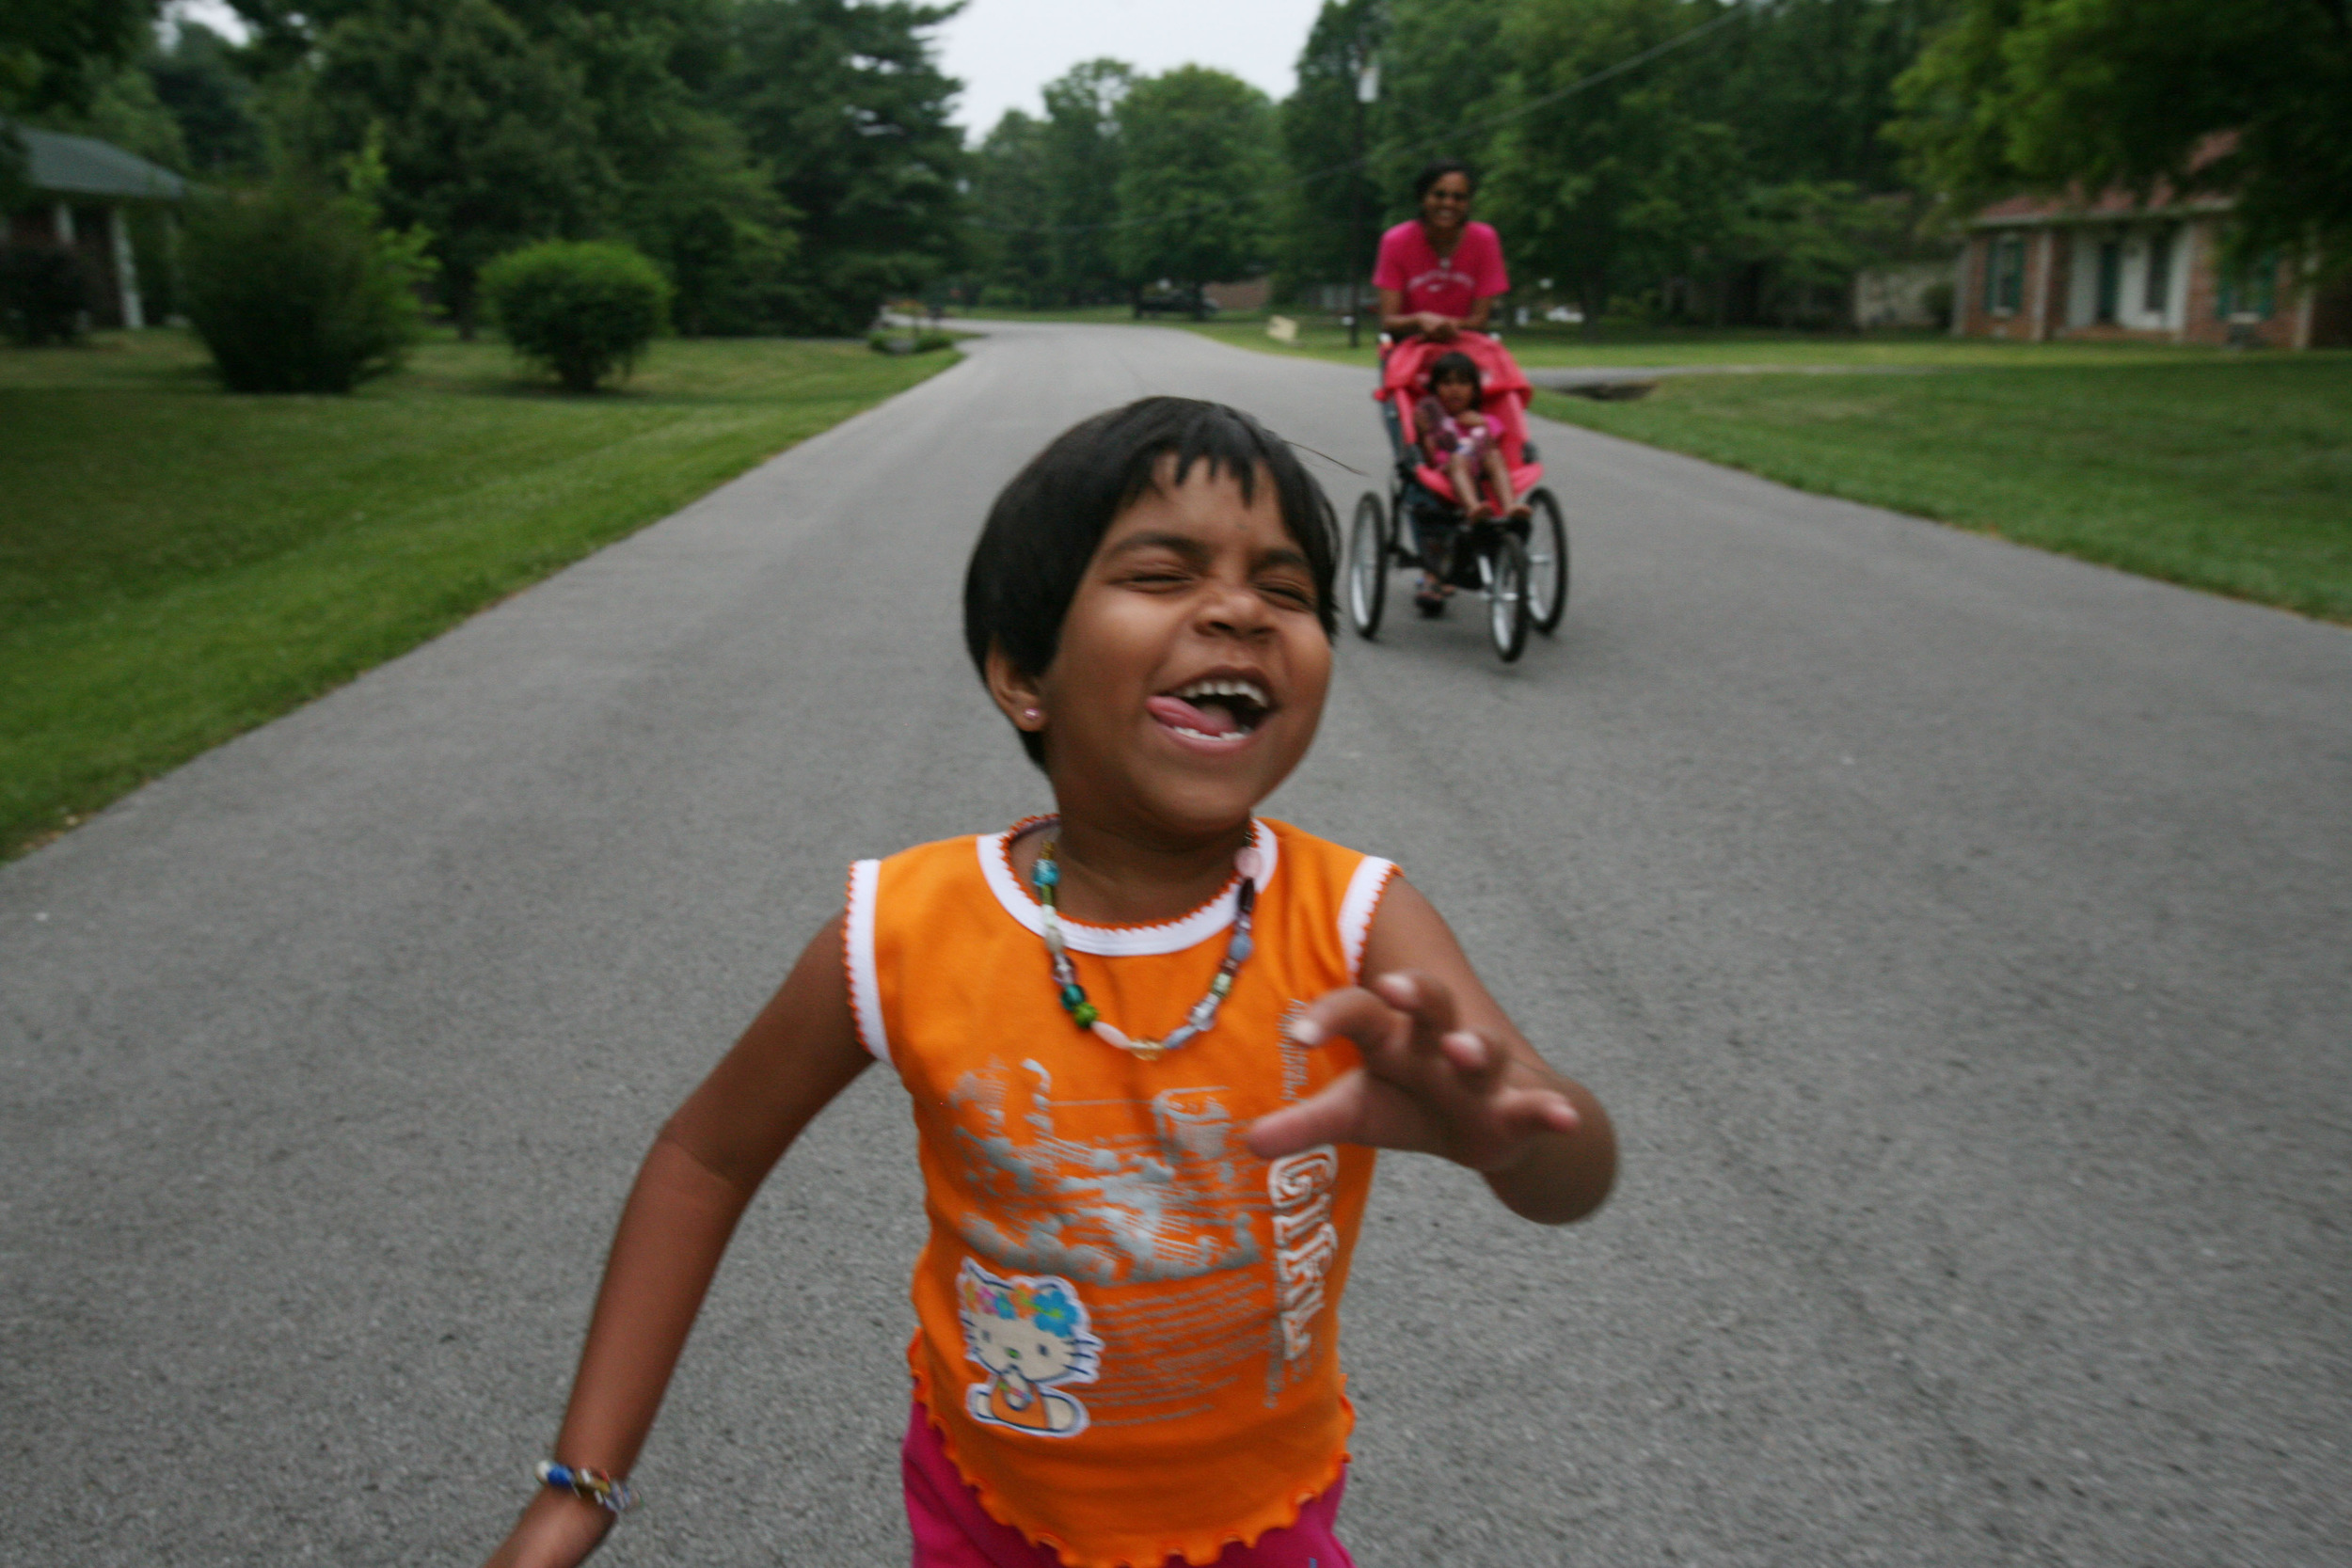 Kajal laughs as she runs down the middle of a quiet suburban street in Franklin, Tenn Wednesday, May 30, 2007. Despite the twists and turns of her difficult life, Kajal can be an exuberant and fearless child.